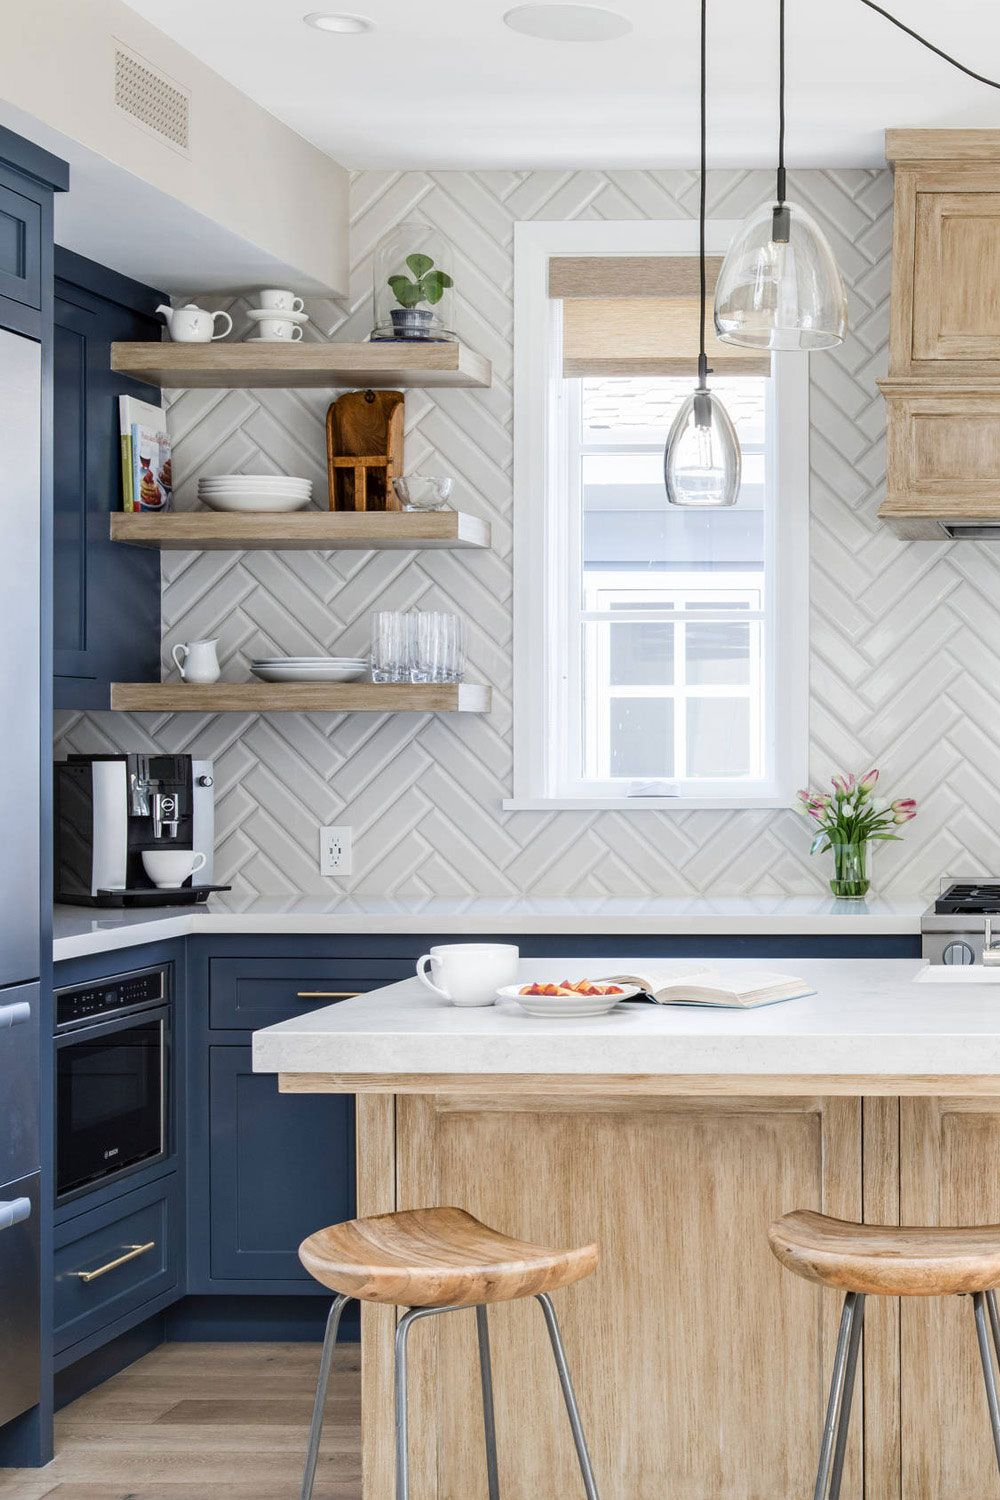 42 Colorfull Herringbone Backsplash Ideas Trendy In 2020 Blue Backsplash Kitchen White Wood Kitchens Kitchen Design